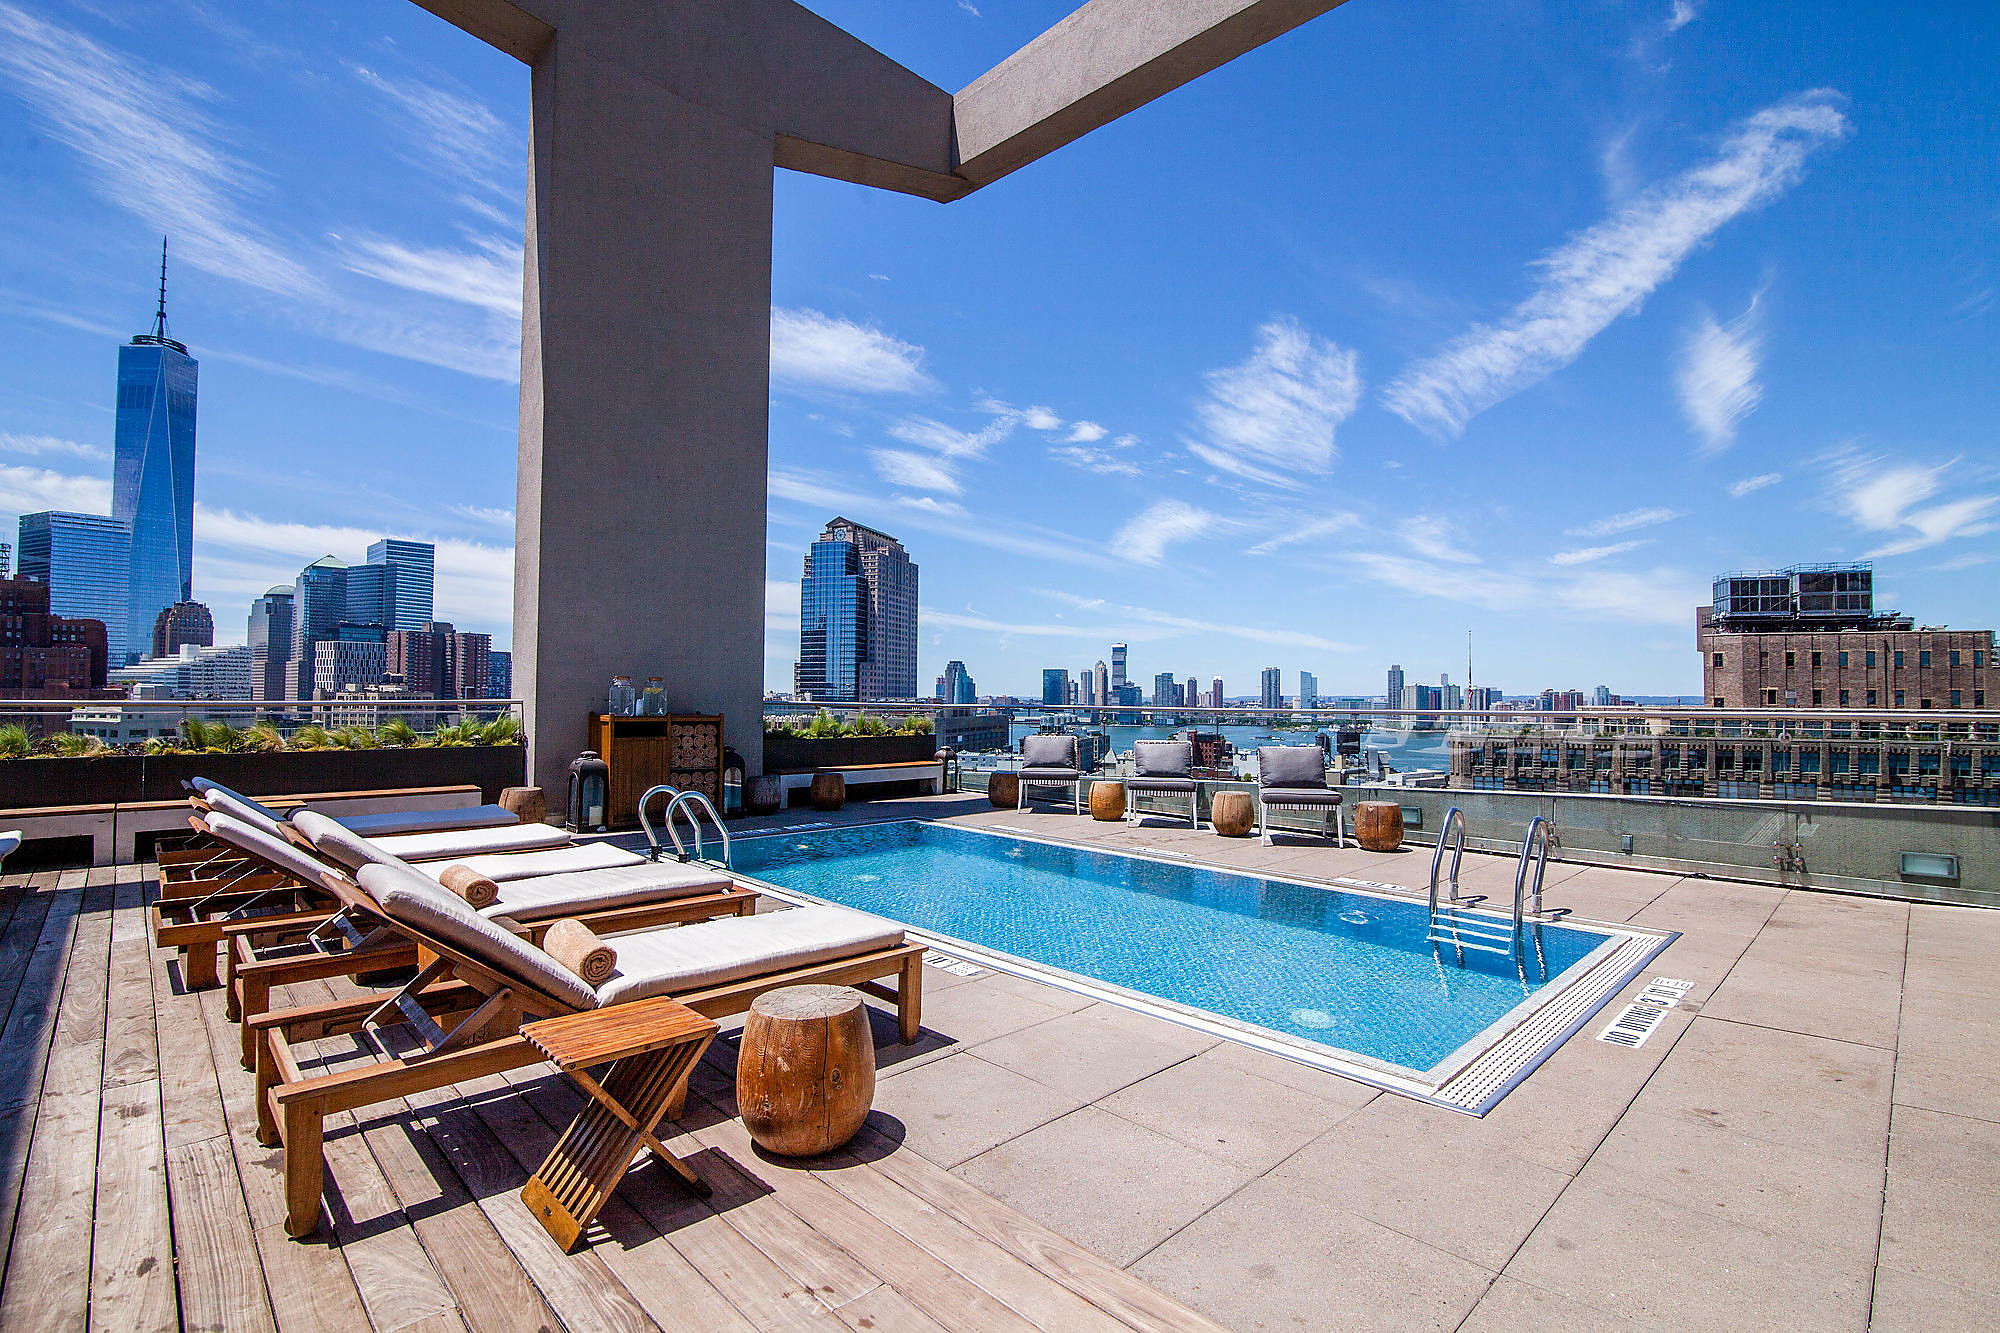 The pool and terrace at The James New York SoHo.